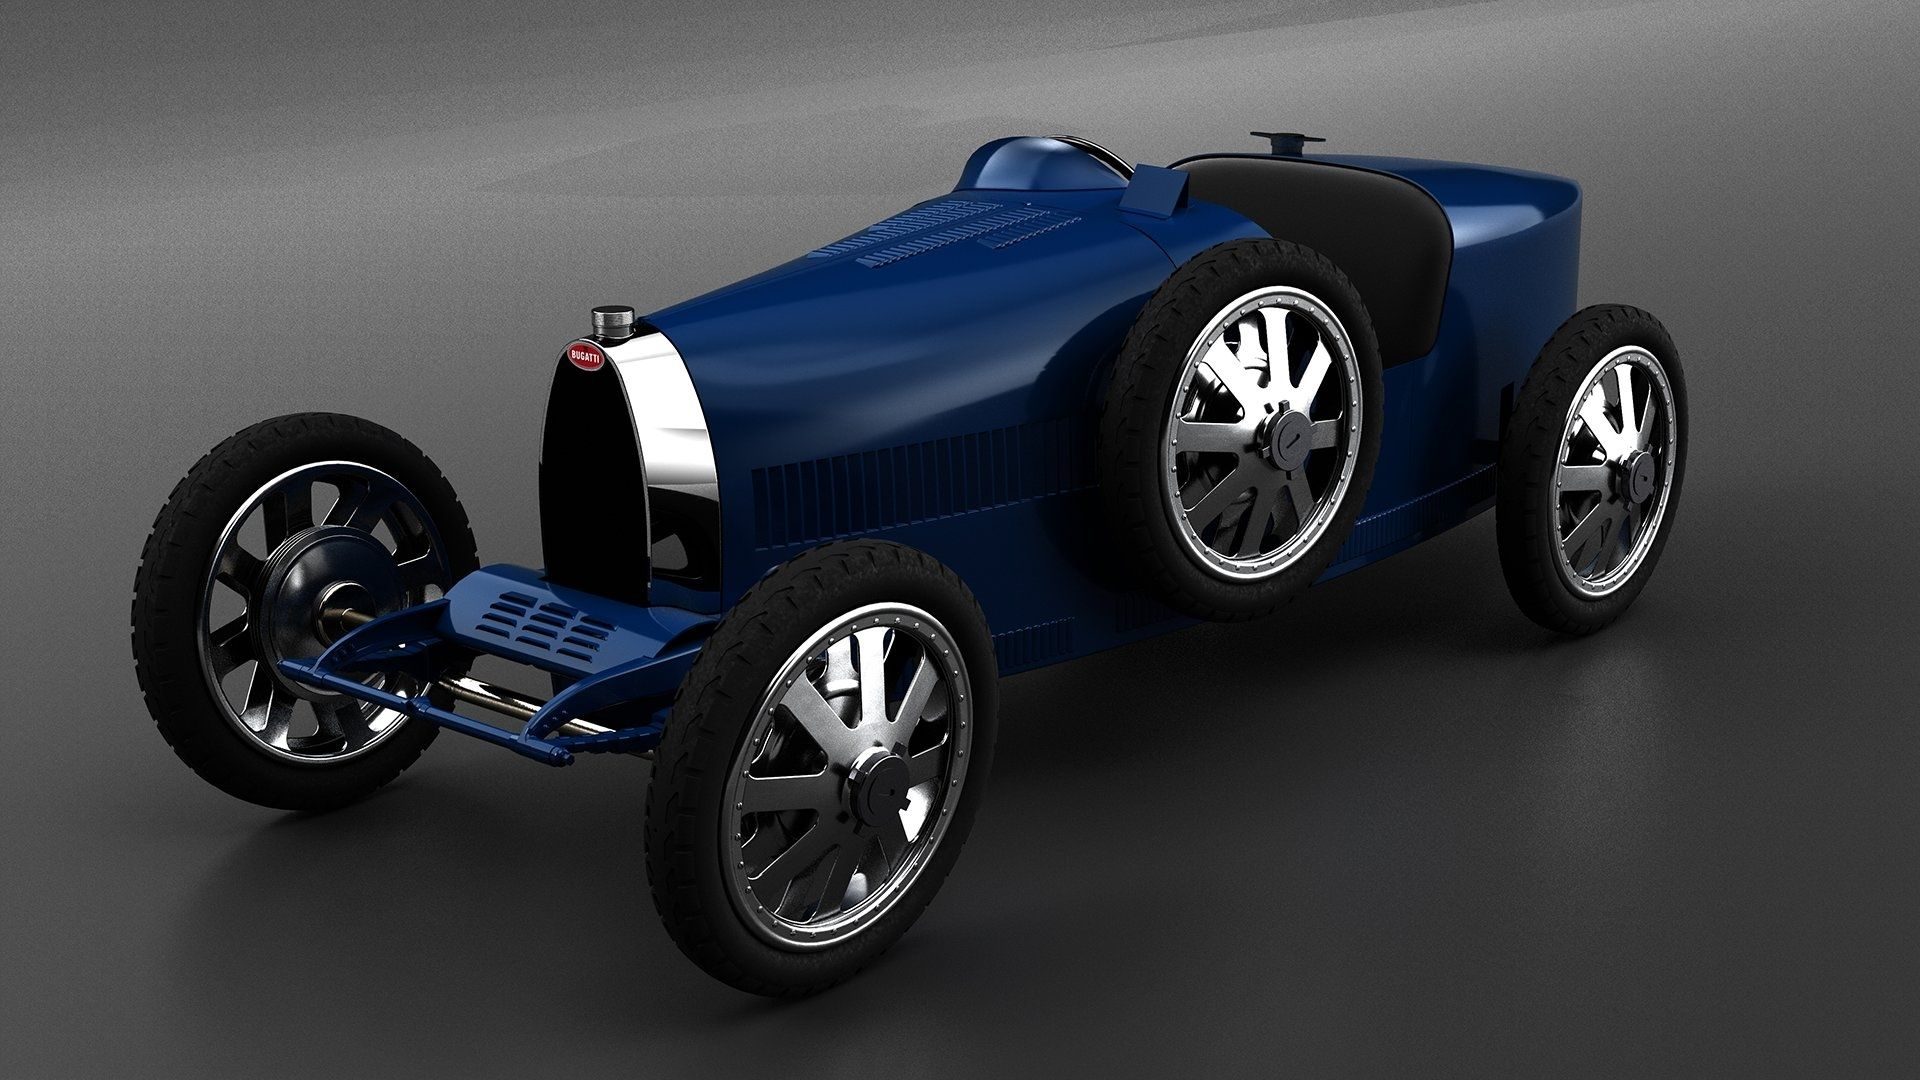 Bugatti Introduces A 'Baby' Electric Car For Kids